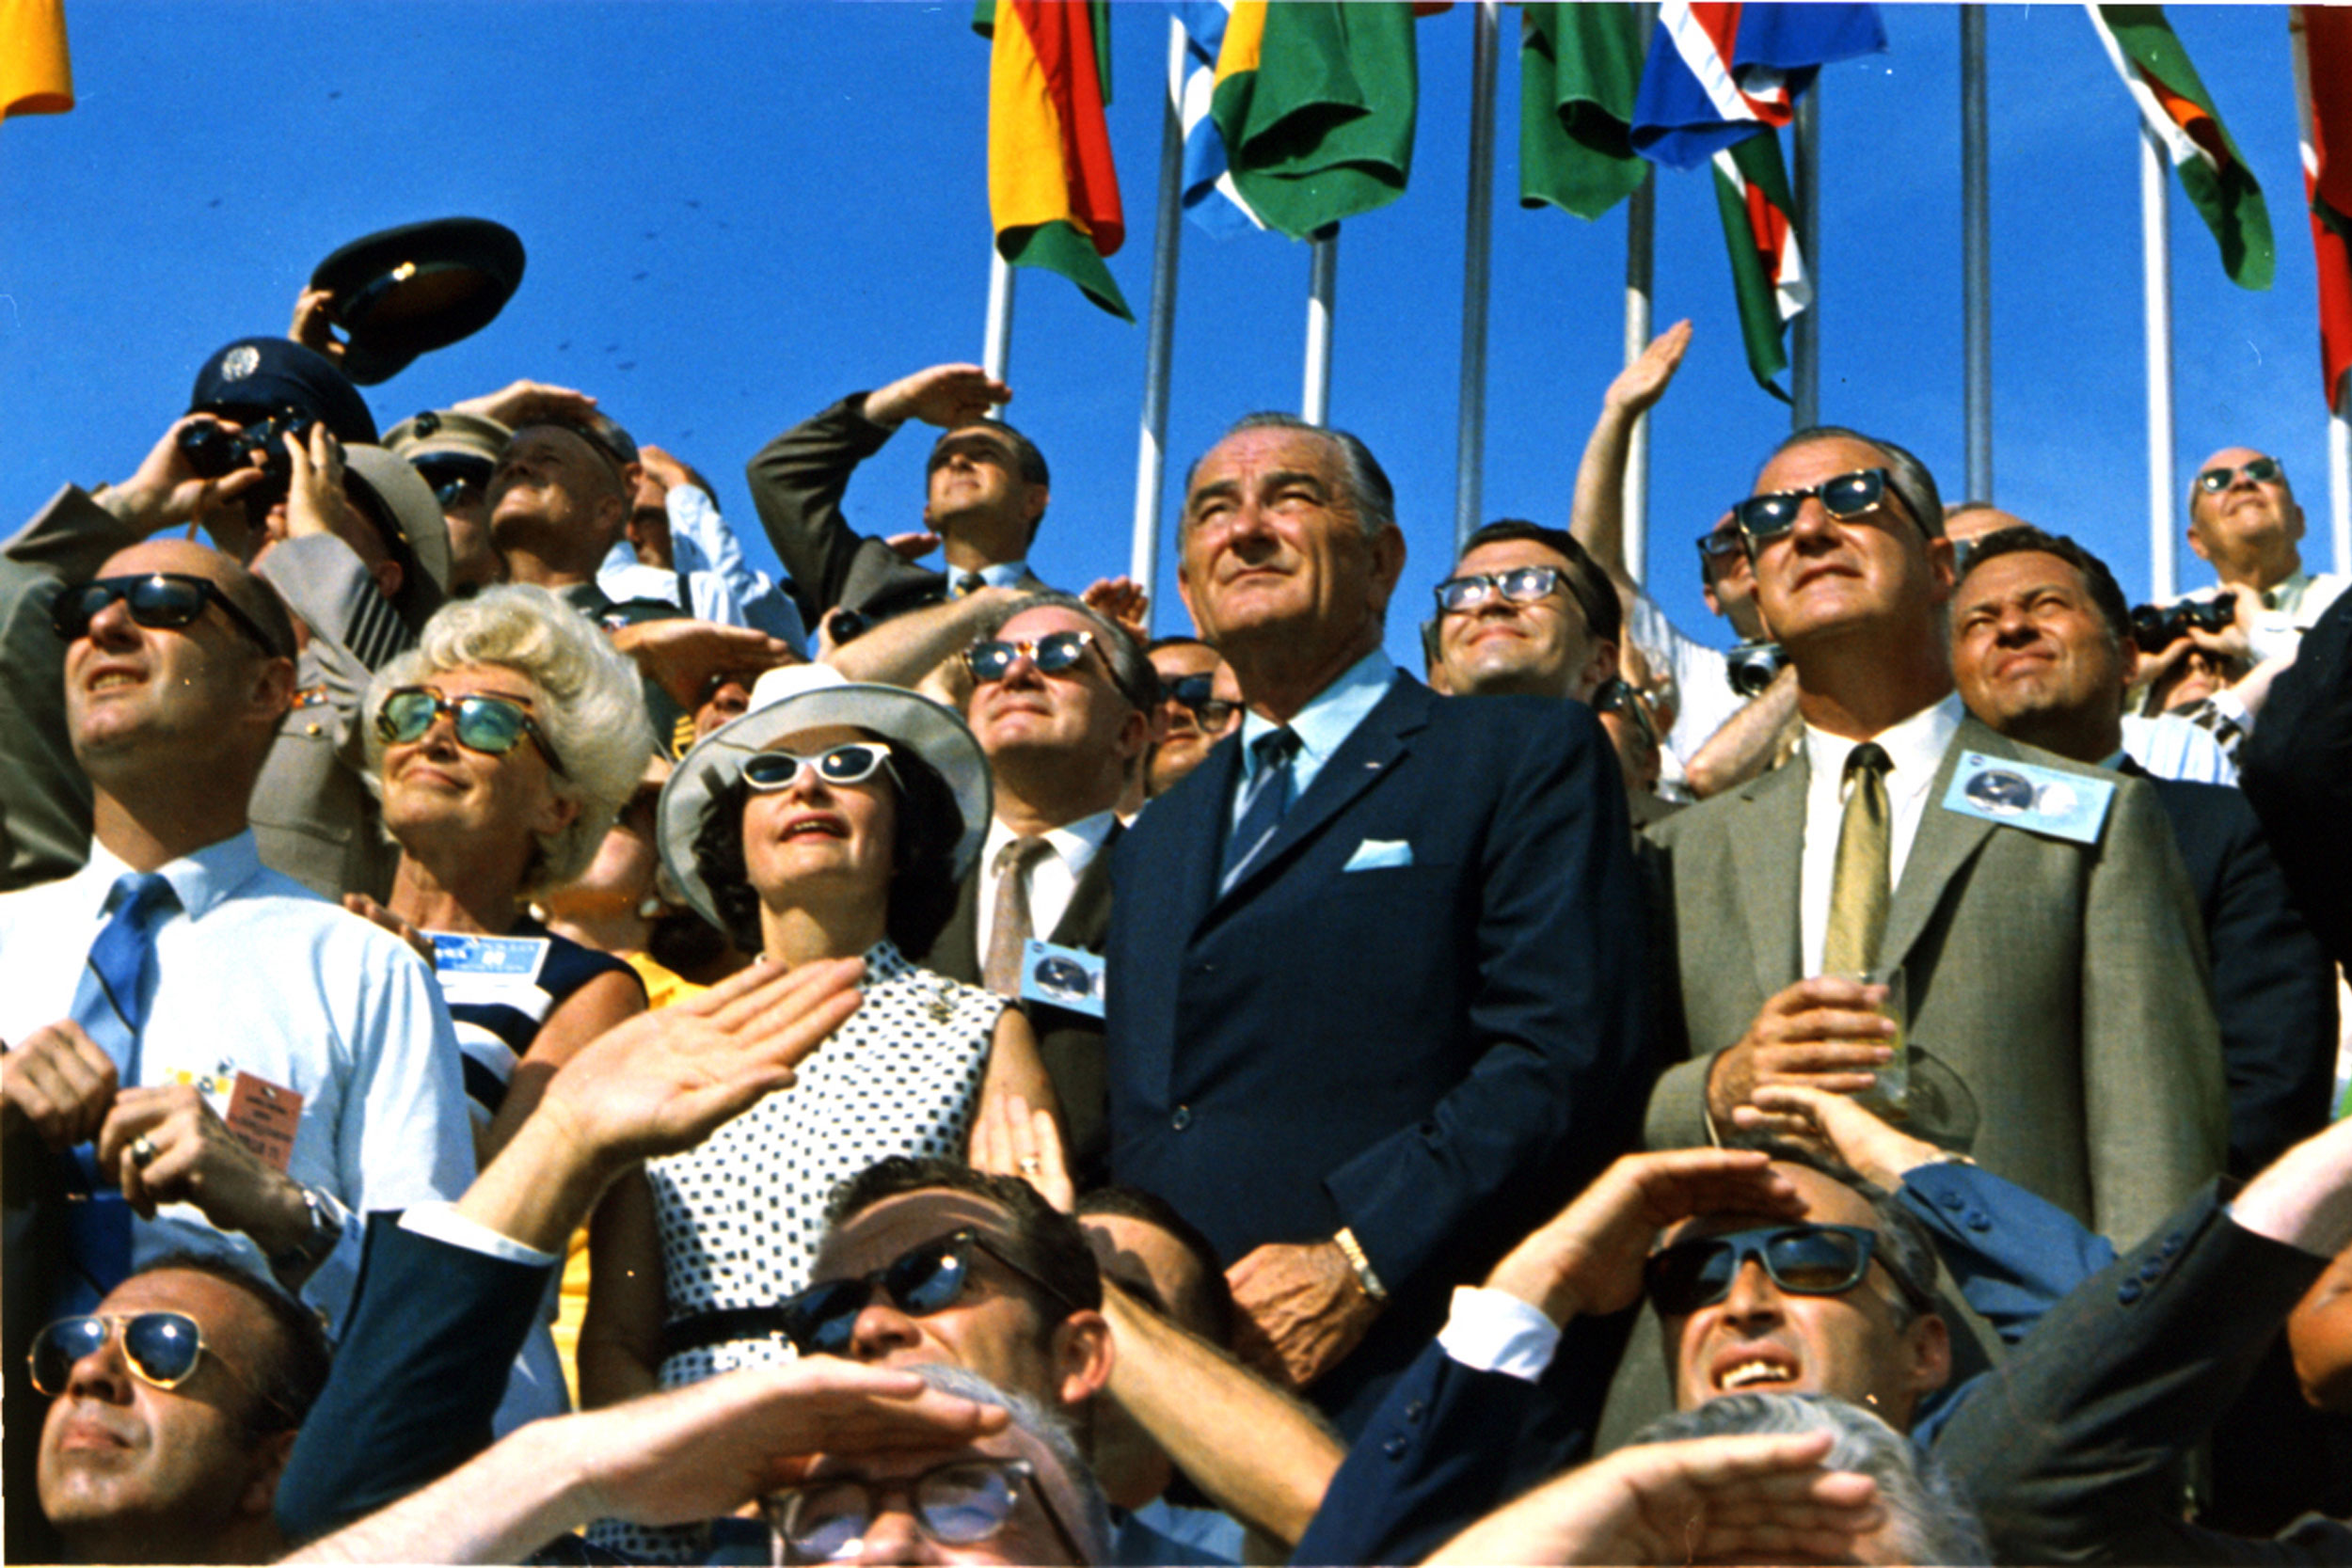 Former Vice President Lyndon Johnson, center, and former first lady Lady Bird Johnson, left, watch the launch of Apollo 11 with Vice President Spiro Agnew, right, in 1969.